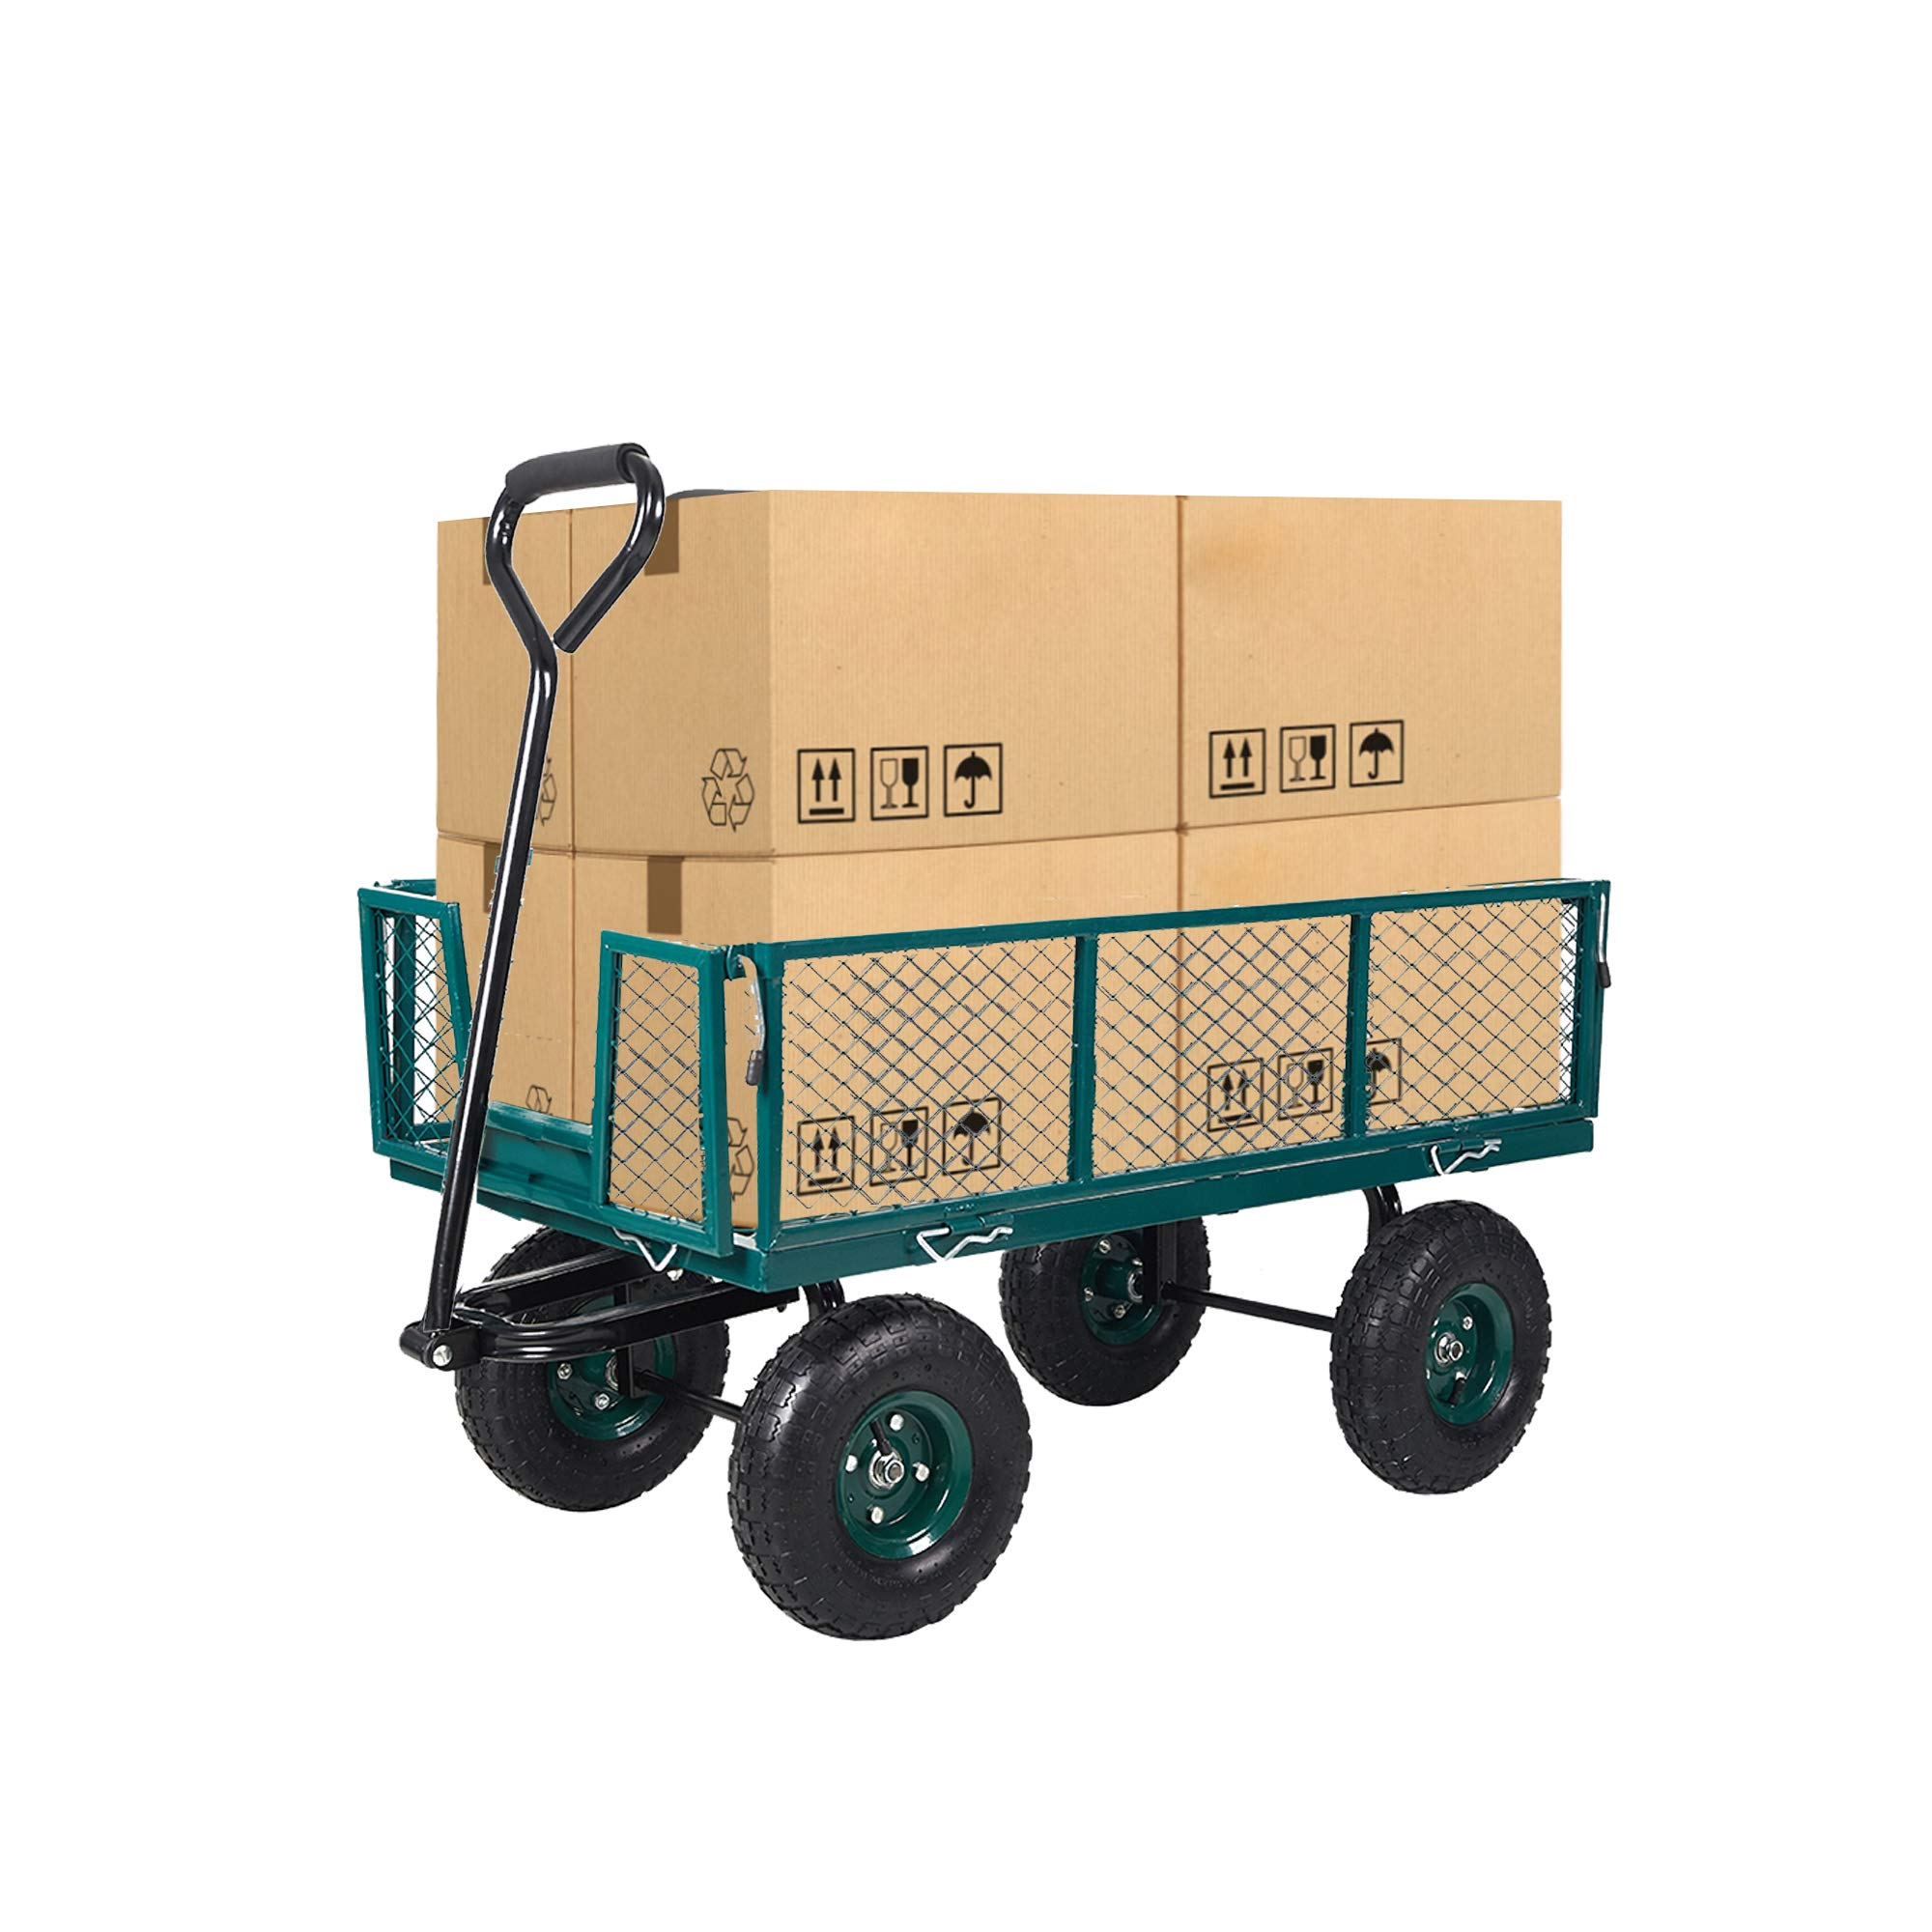 Dporticus Four-Wheel Trailer Large Folding Wagon Side Cart 560lbs Load Capacity, Handling Truck Pull for Outdoor Garden Warehouse Beach